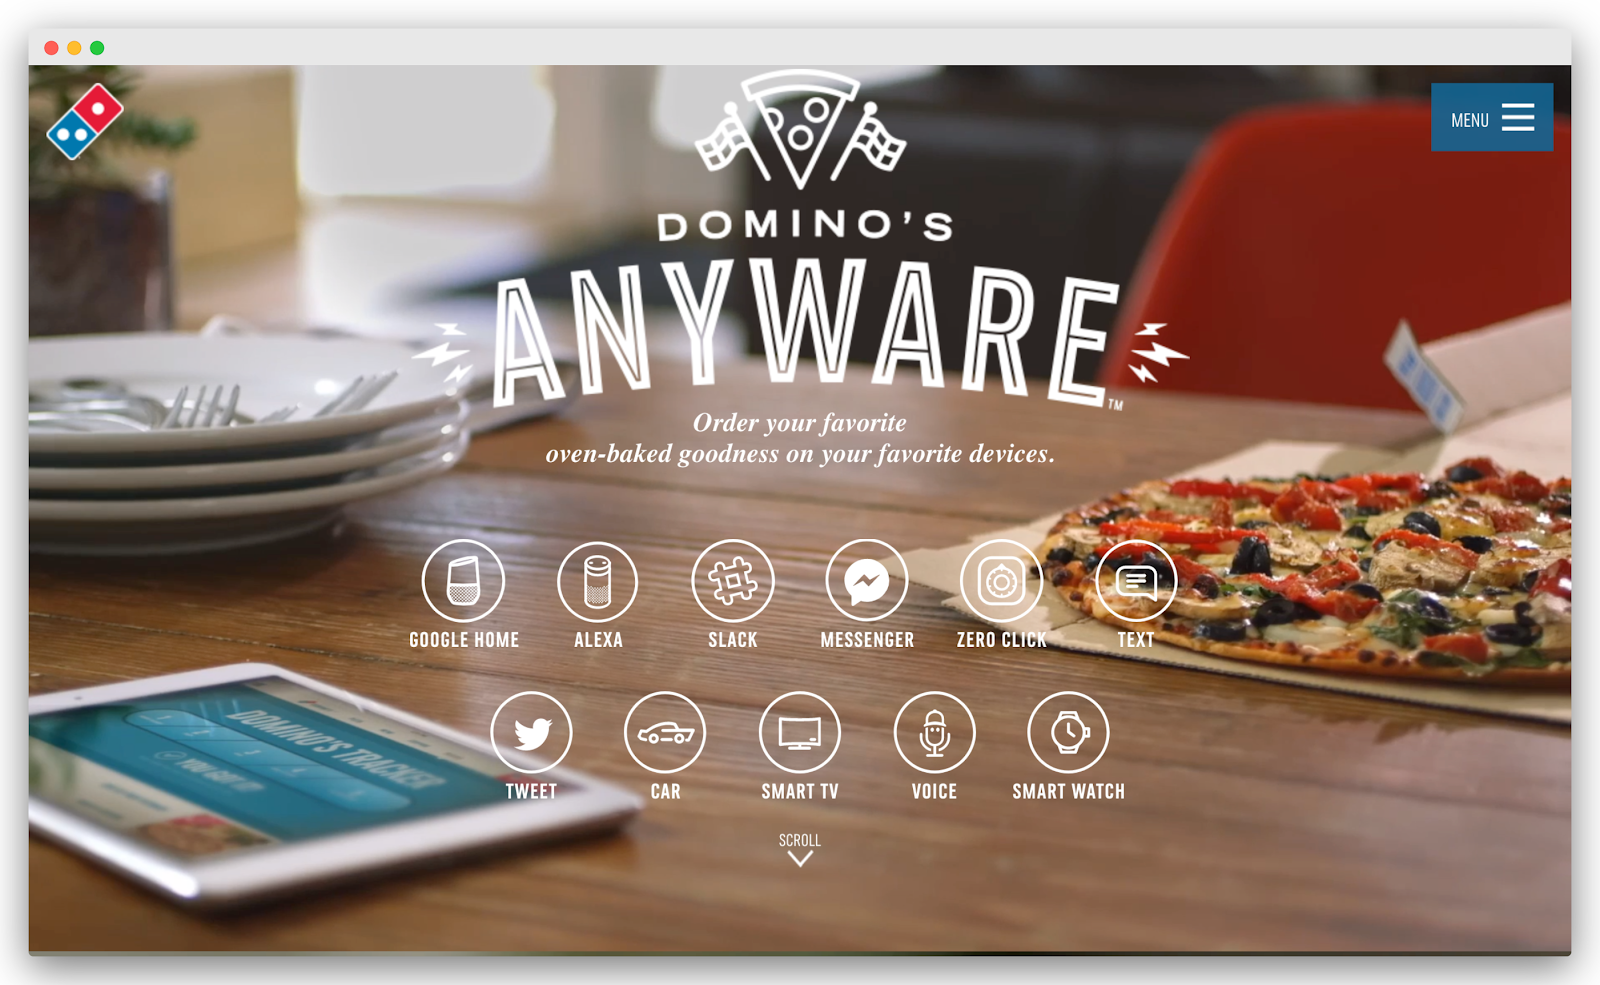 Domino's chat options